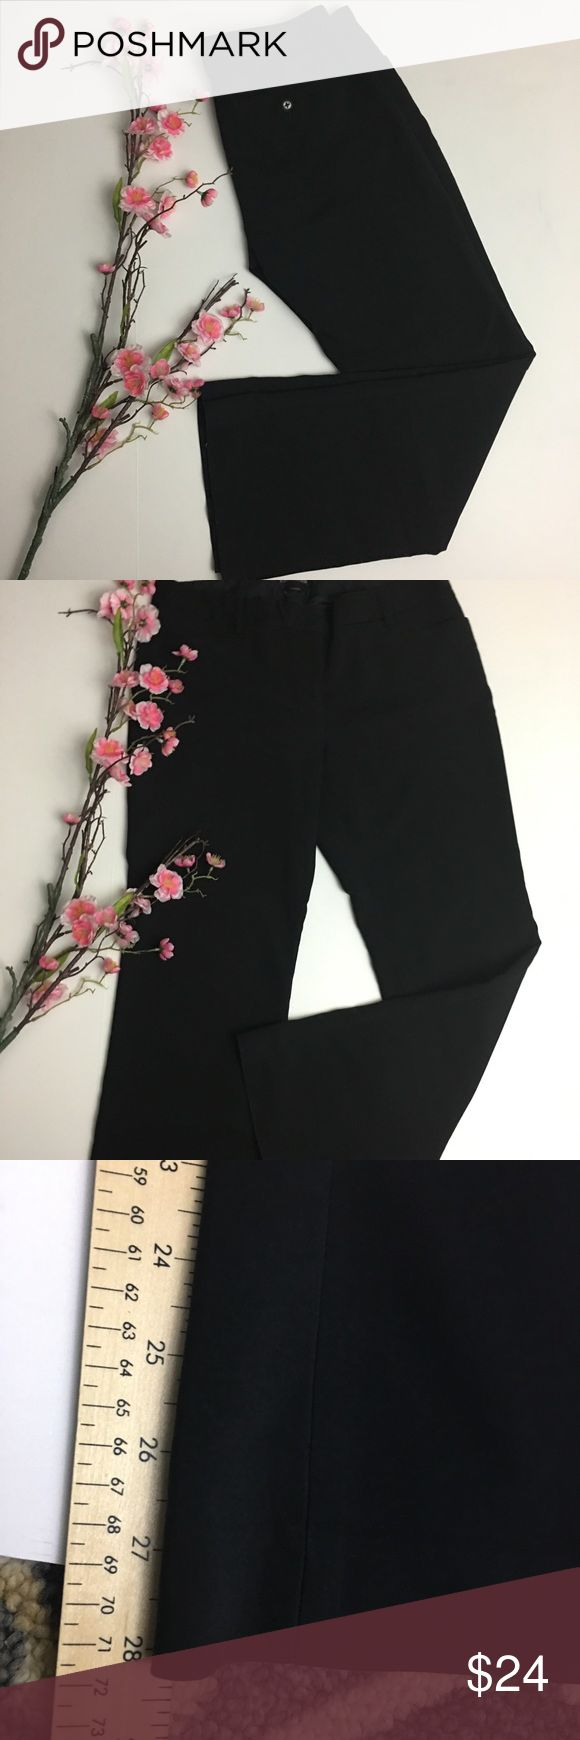 """Express Columnist Short Inseam Black Dress Pants 28"""" inseam. Great condition. No marks, tears or stains. Original price $79.50. Listed at 70% off The Limited Pants Trousers"""